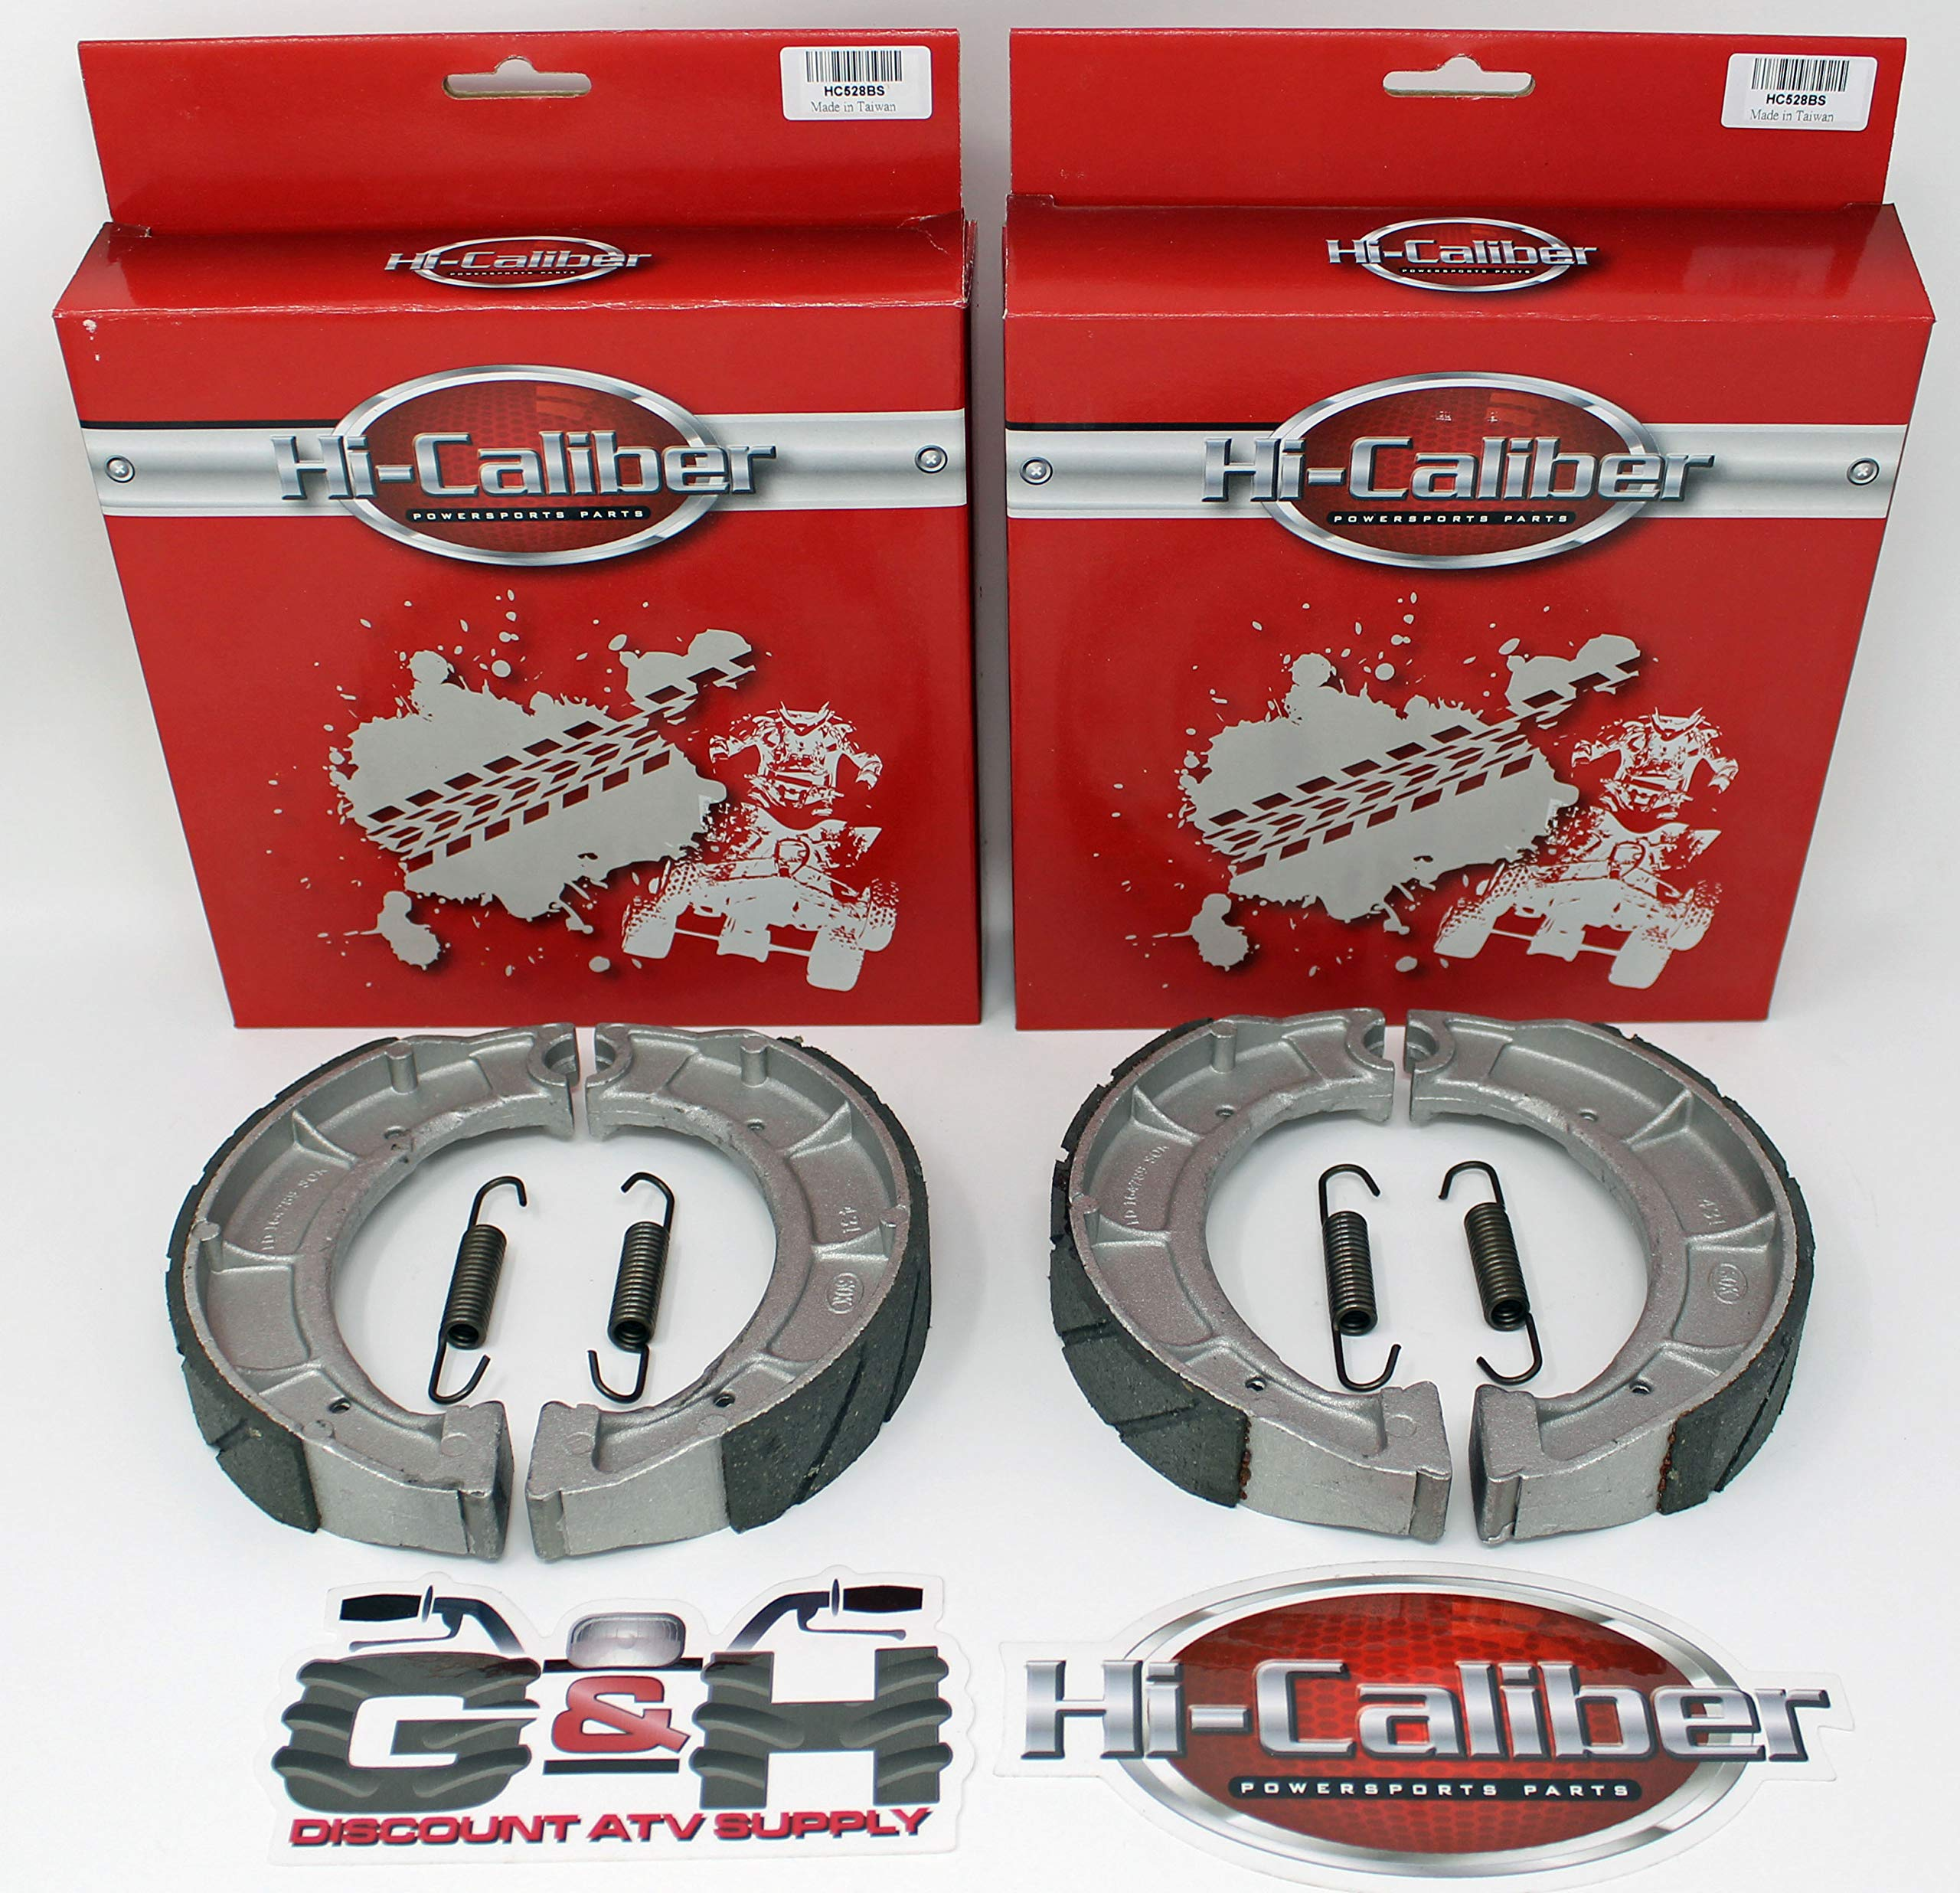 (2 Sets) WATER GROOVED Front Brake Shoes & Springs 1994-2000 Yamaha YFB 250 Timberwolf ATVs by Hi-Caliber Powersports Parts